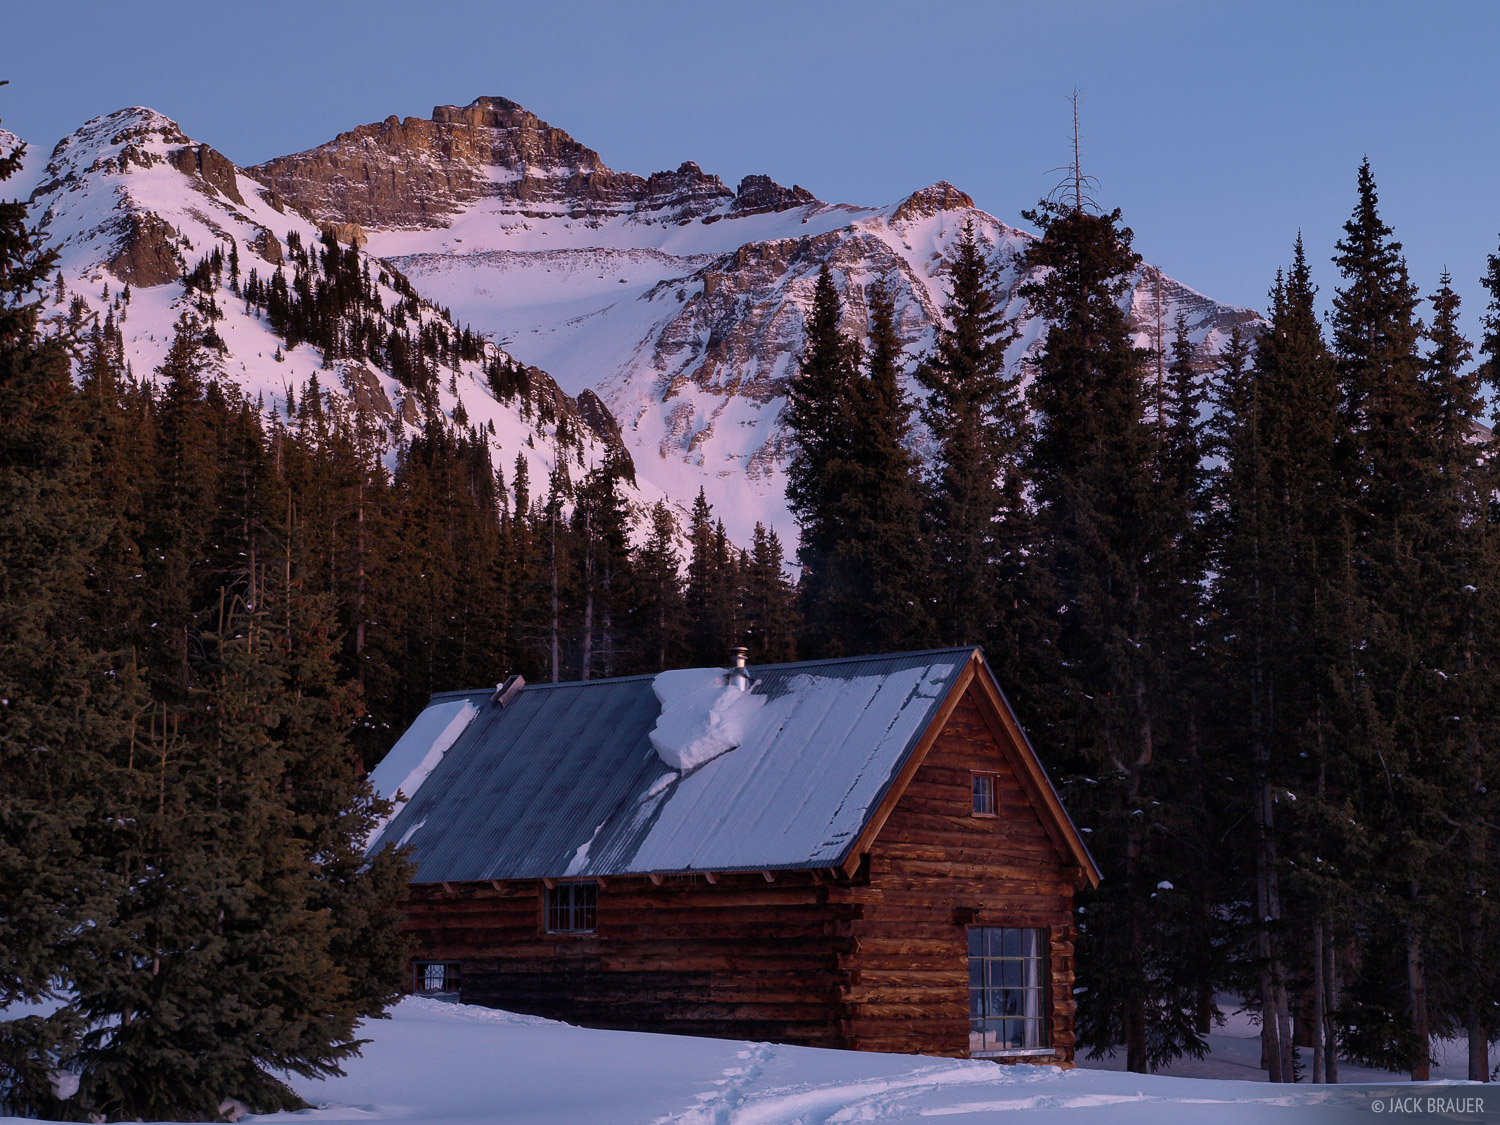 Vermilion Peak, 13,894 ft., towers over the backcountry cabin.